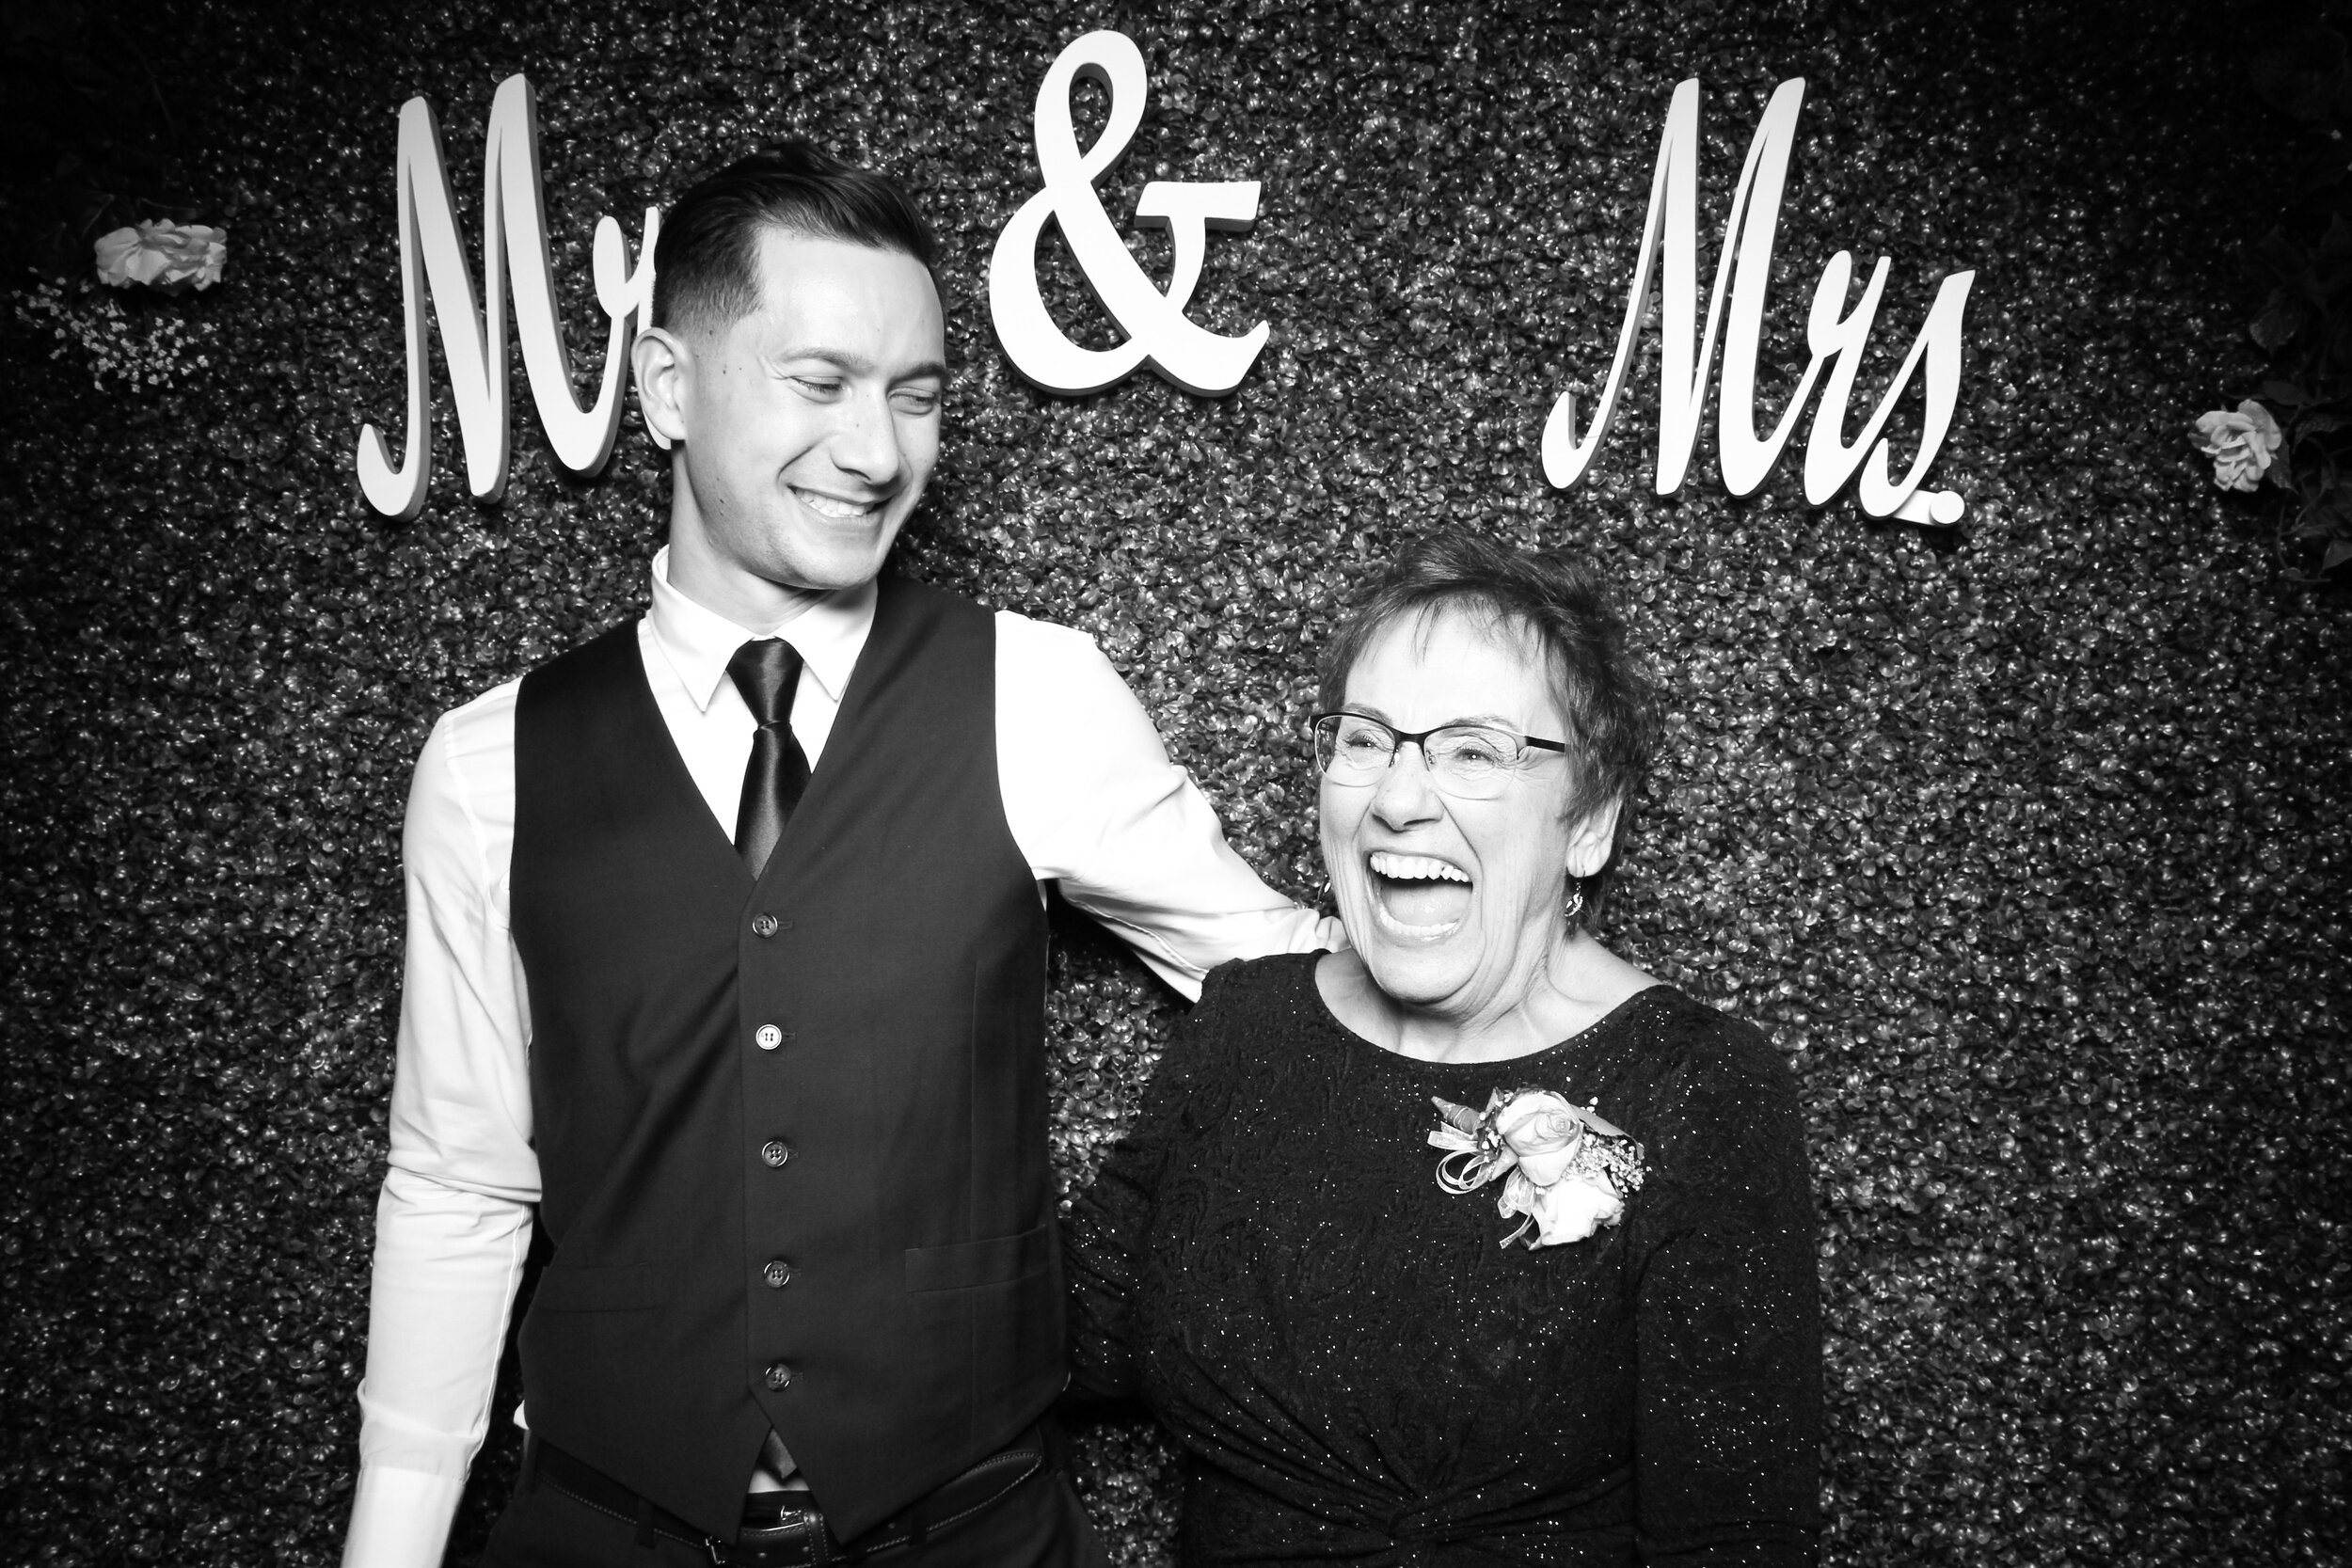 Green_Hedge_Ivy_Wall_Backdrop_Photo_Booth_Rental_Chicago_24.jpg